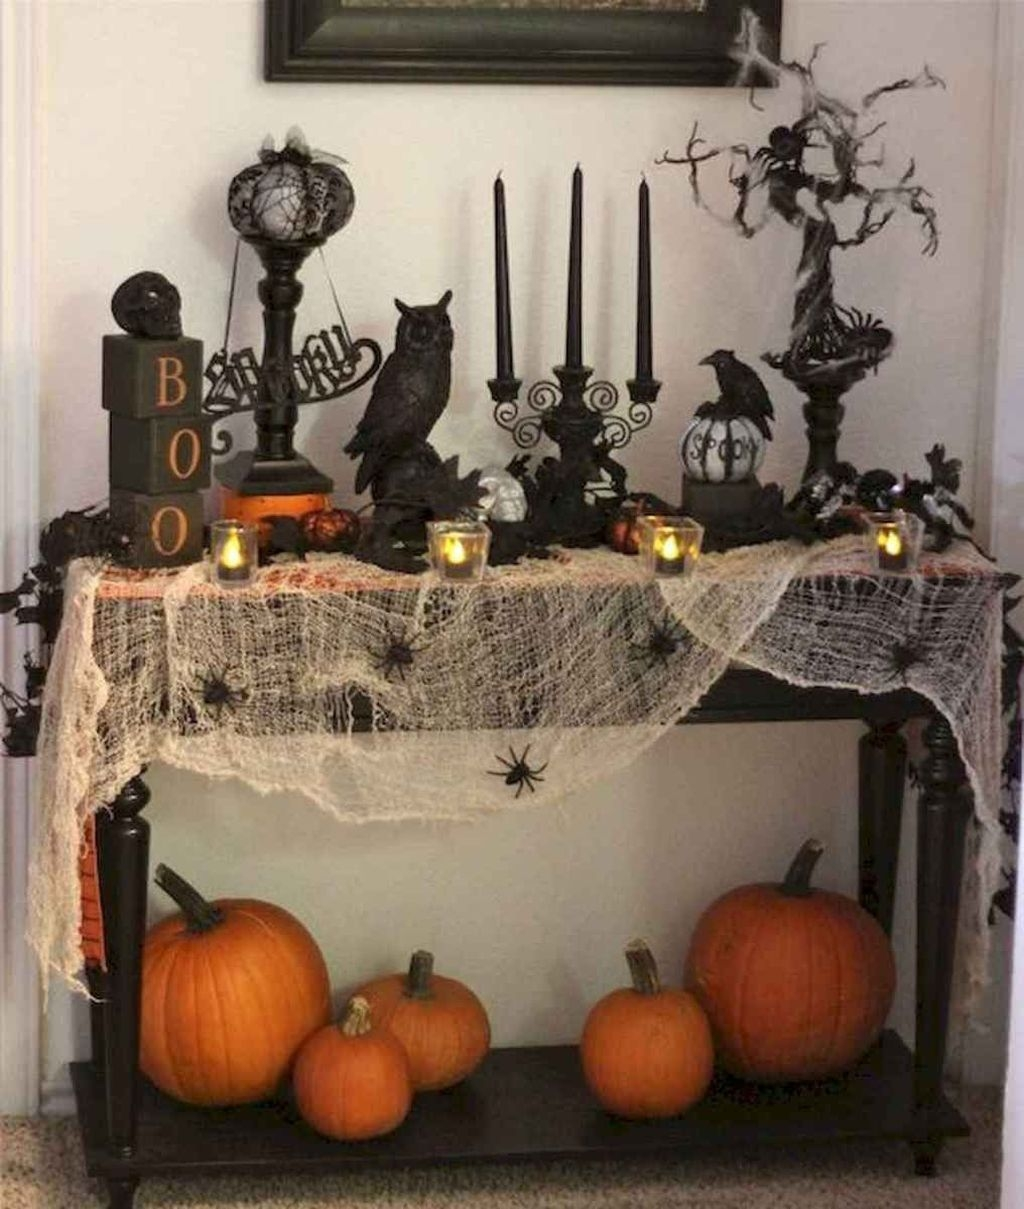 30+ Creepy Halloween Home Decor Ideas That Will Spook Your